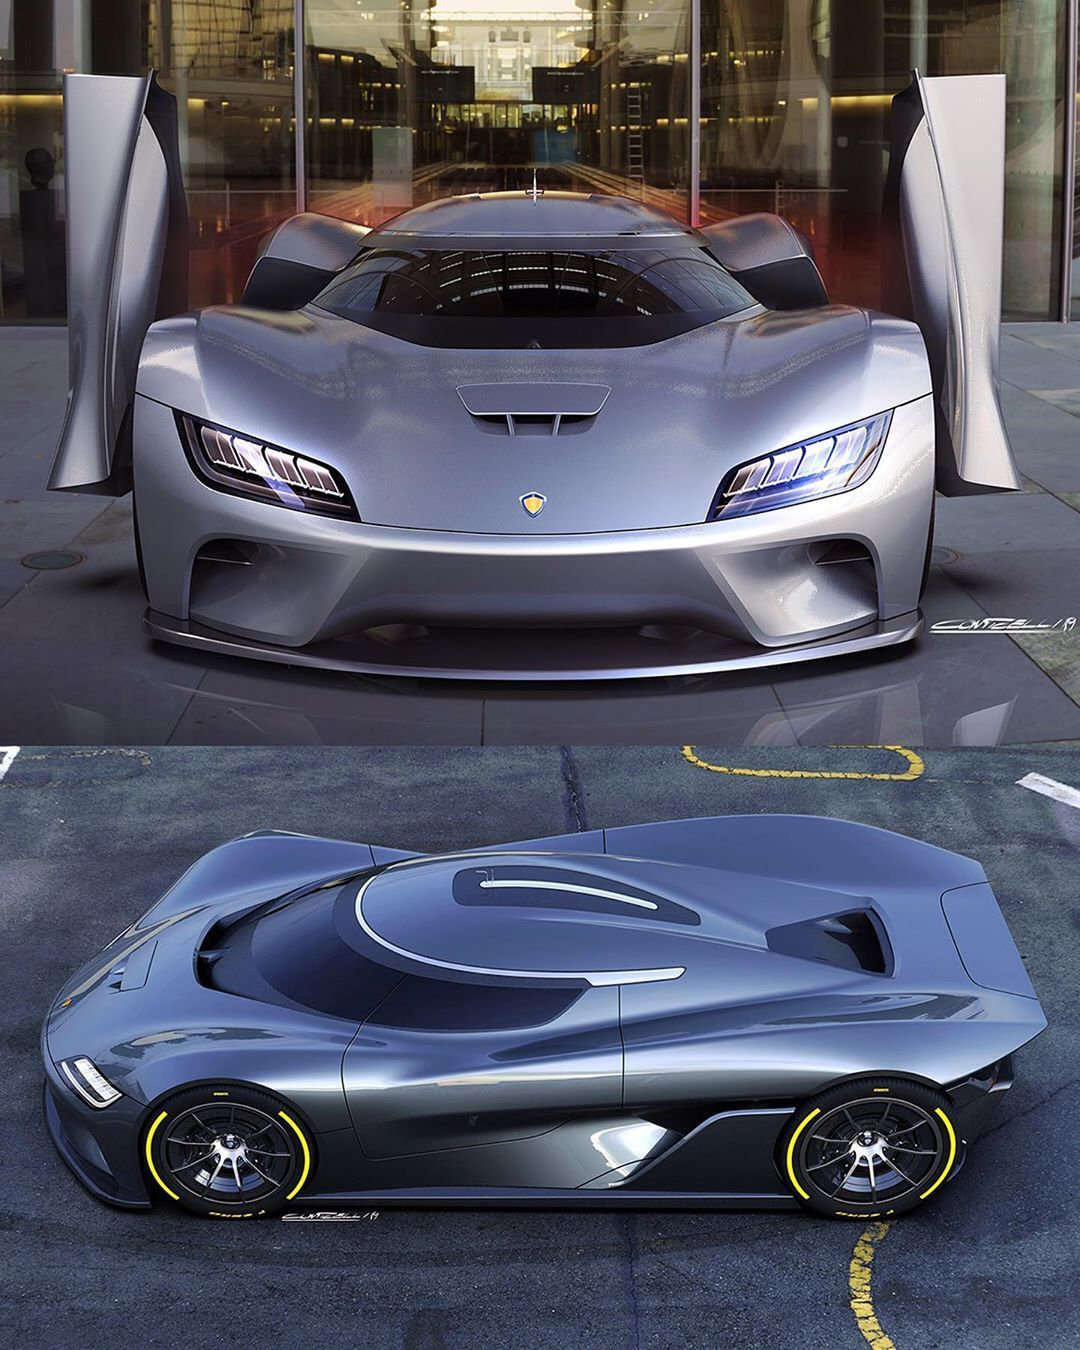 Sw Sports Car Koenigsegg Toyota: Pin By Mohammad Amin On Amazing Cars